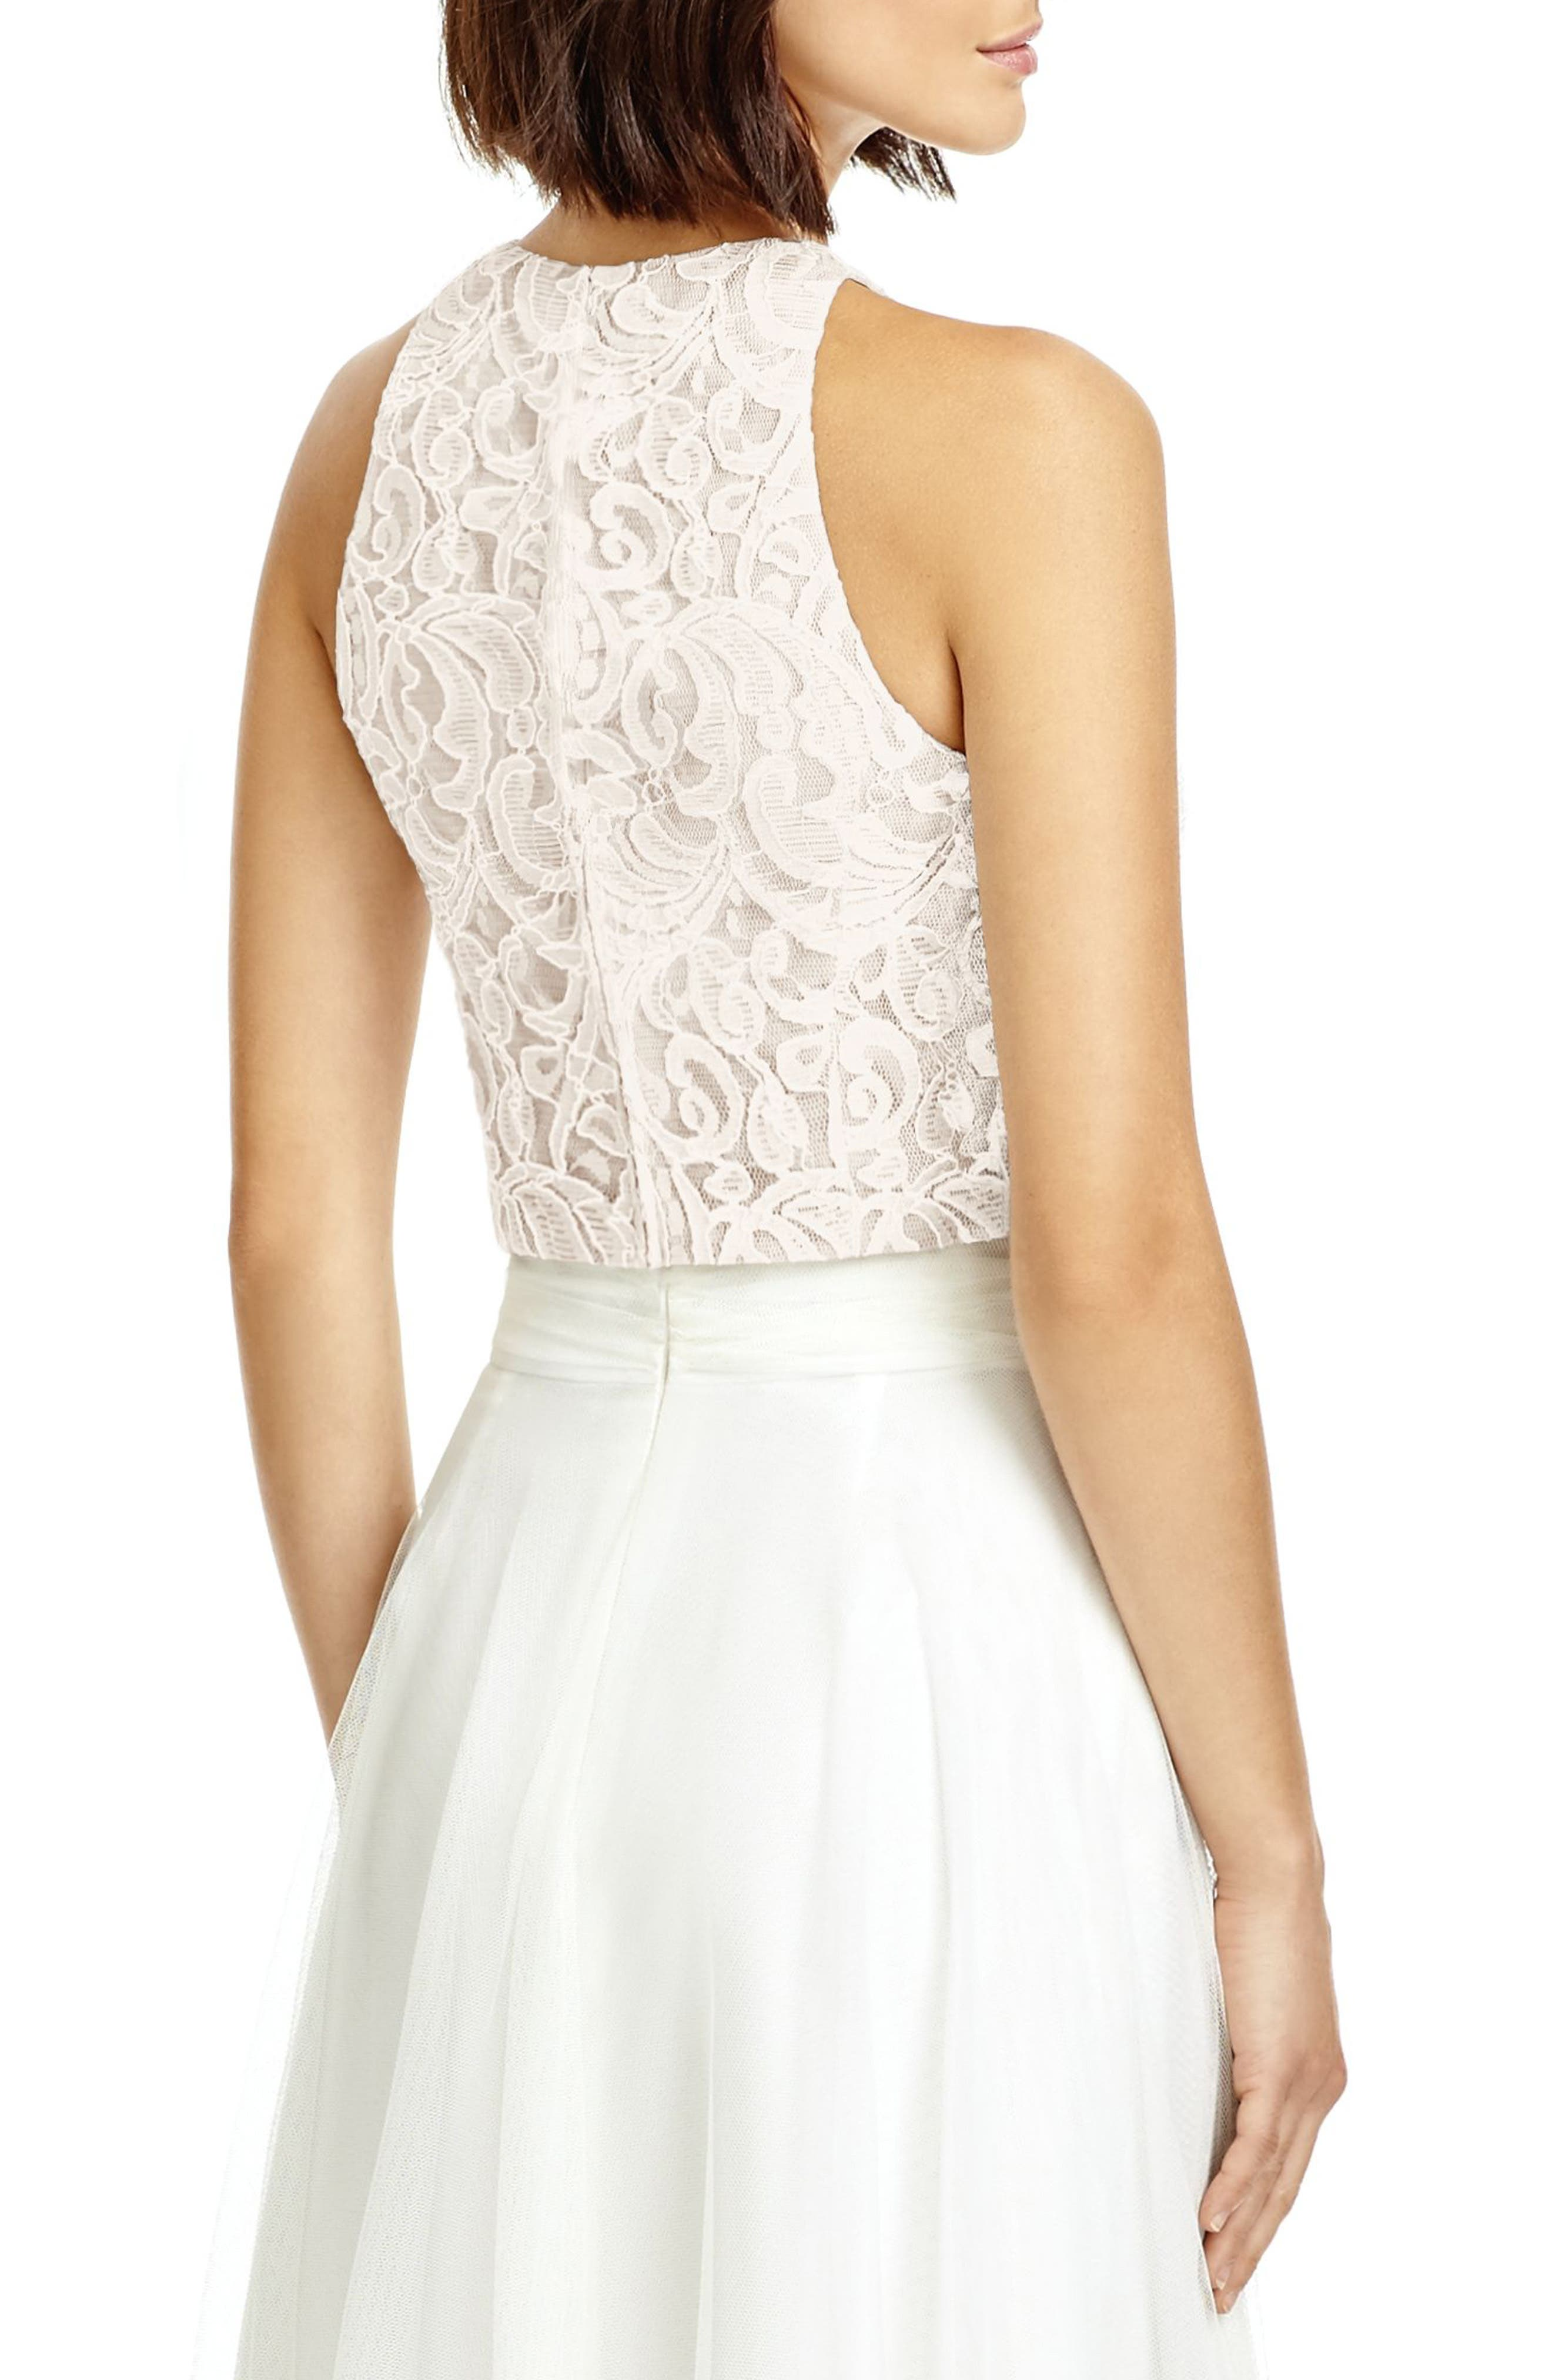 DESSY COLLECTION, Lace Halter Style Crop Top, Alternate thumbnail 2, color, IVORY LACE/ TOPAZ/ IVORY